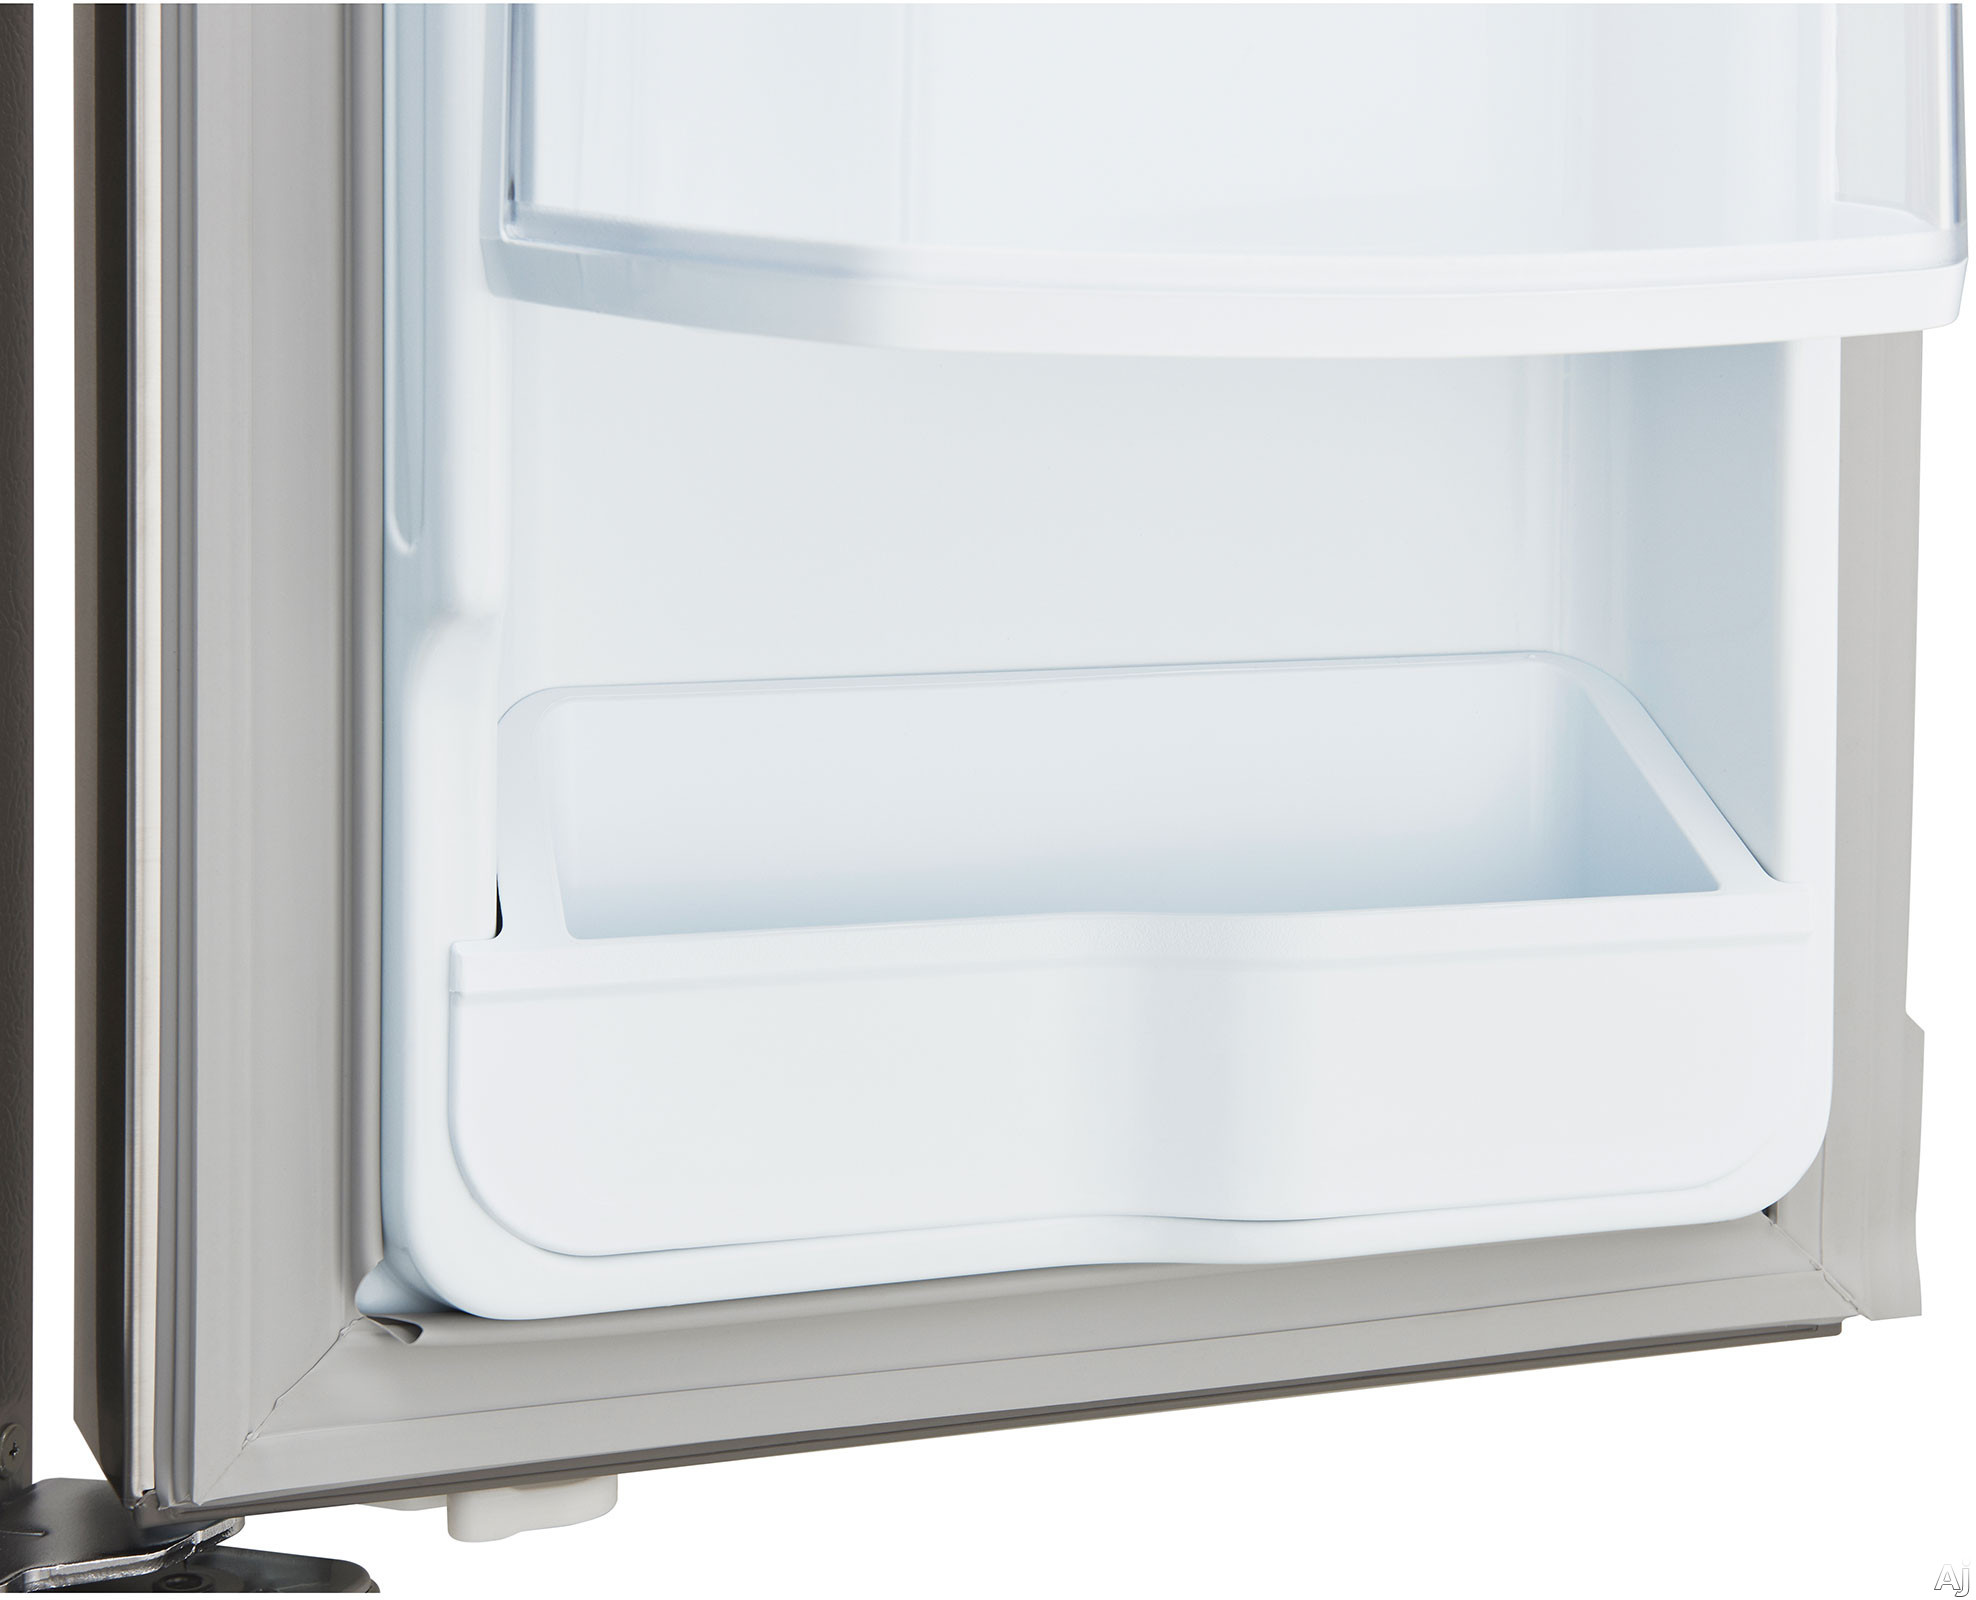 Lg Lfcs22520s 21 8 Cu Ft French Door Refrigerator With 2